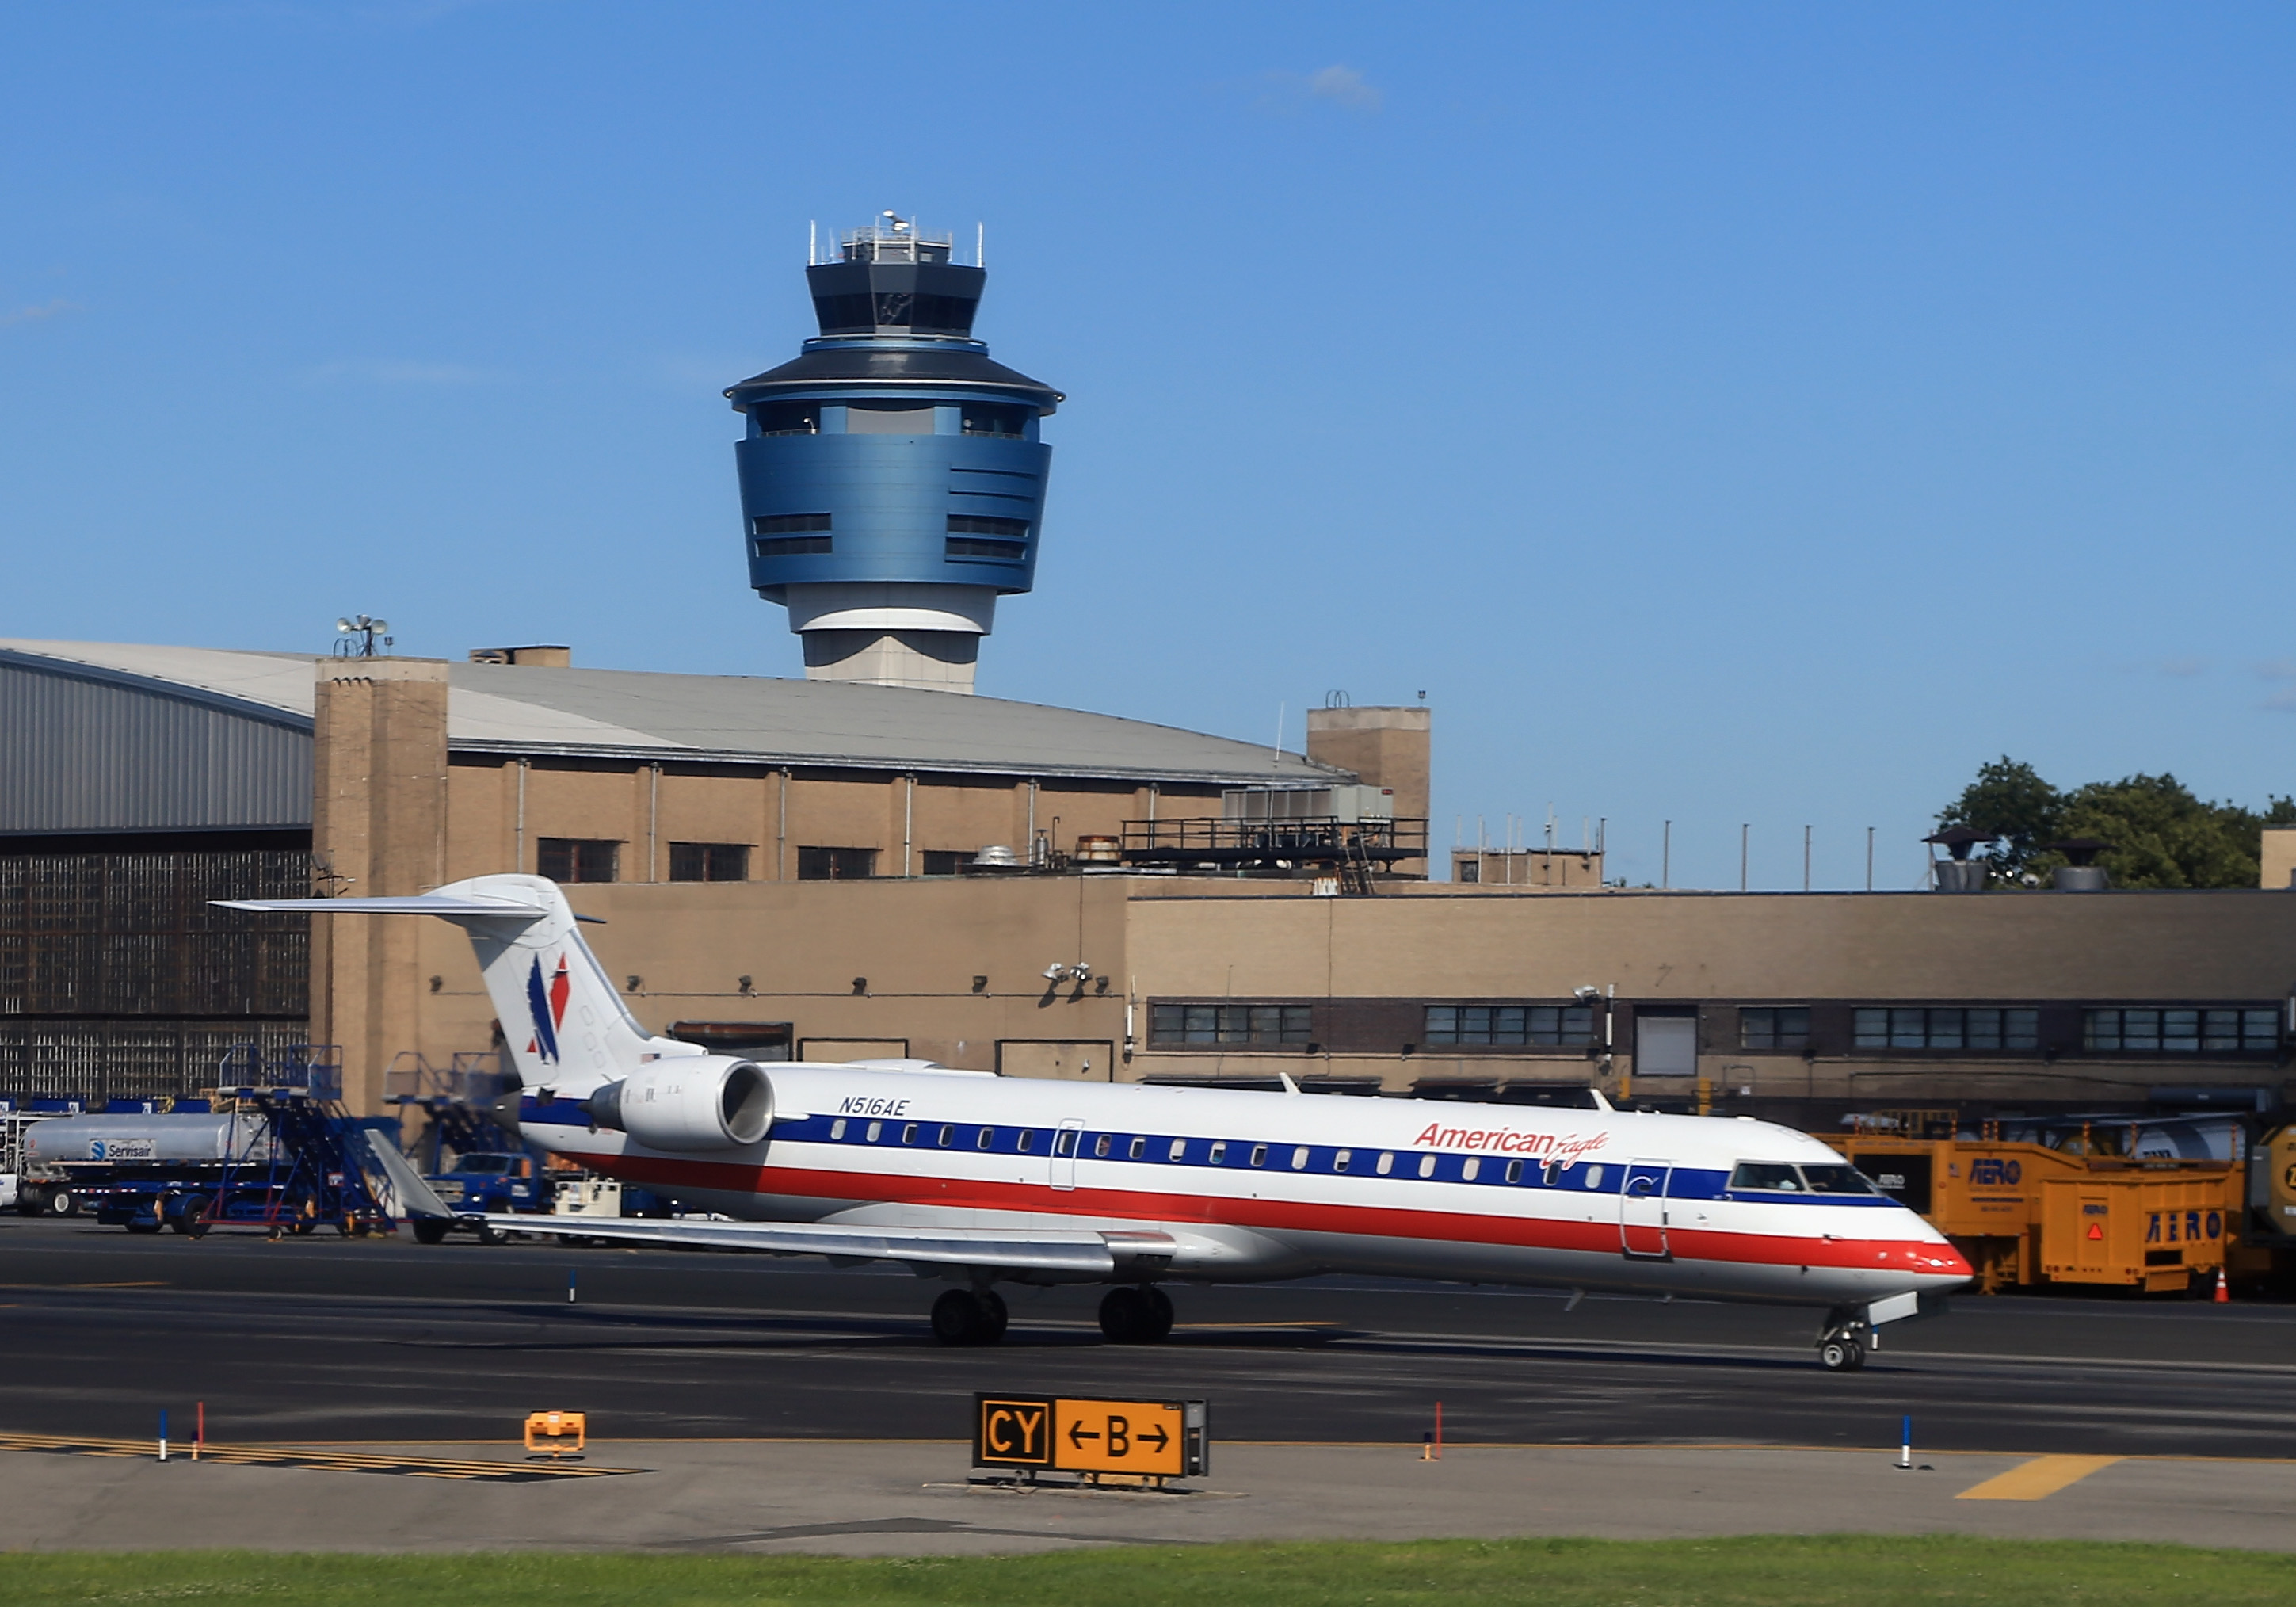 An American Airlines jet taxis on the runway at Laguardia Airport on August 14, 2013 in New York, New York.